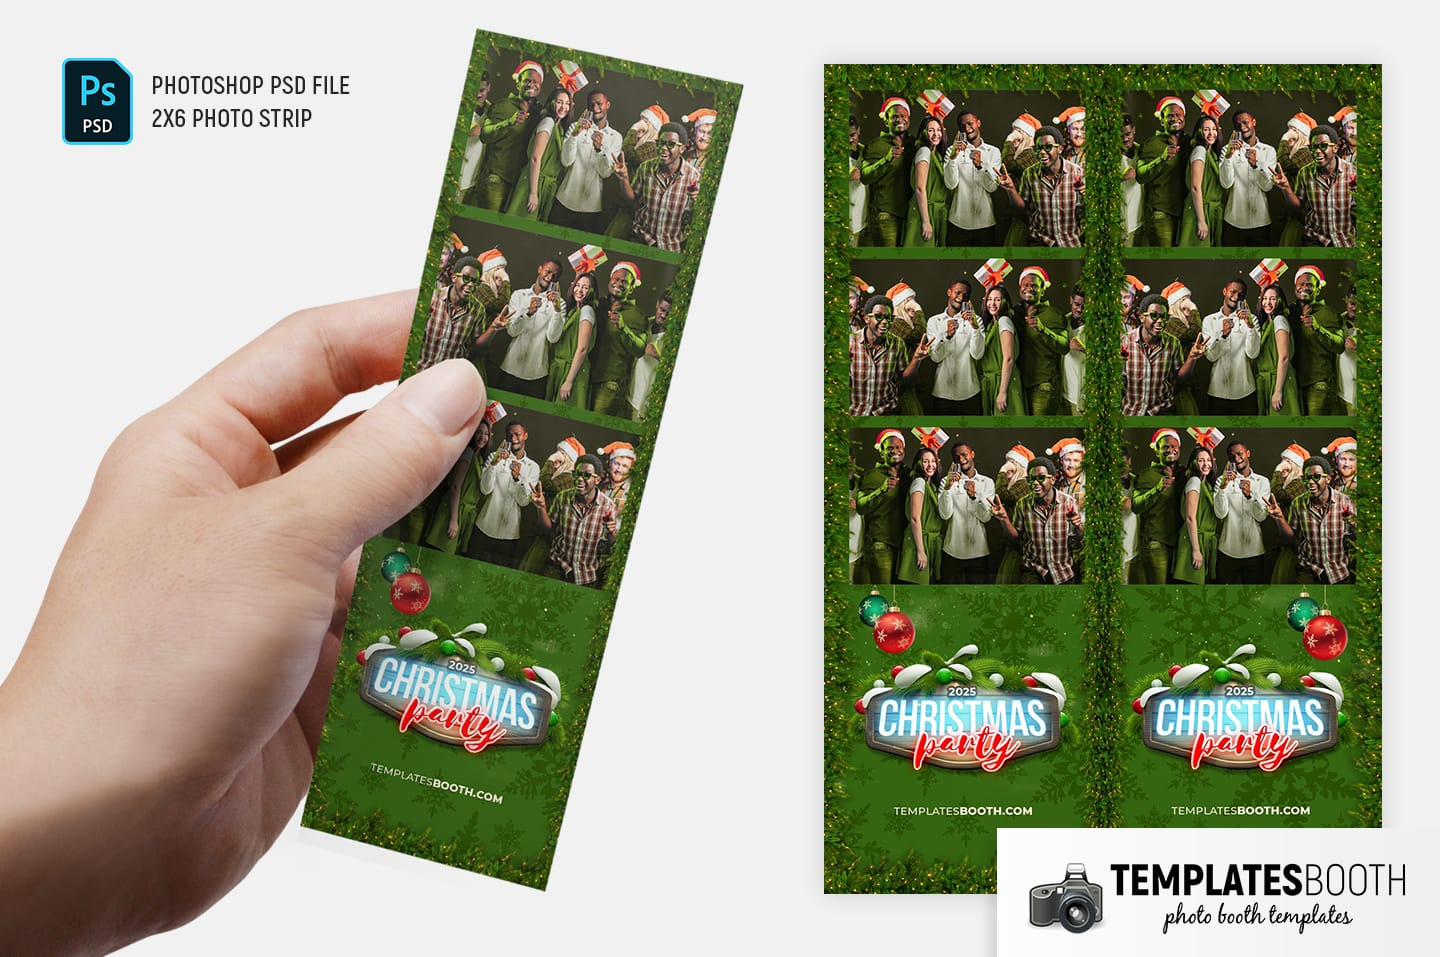 Green Christmas Photo Booth Template (2x6 photo strip)